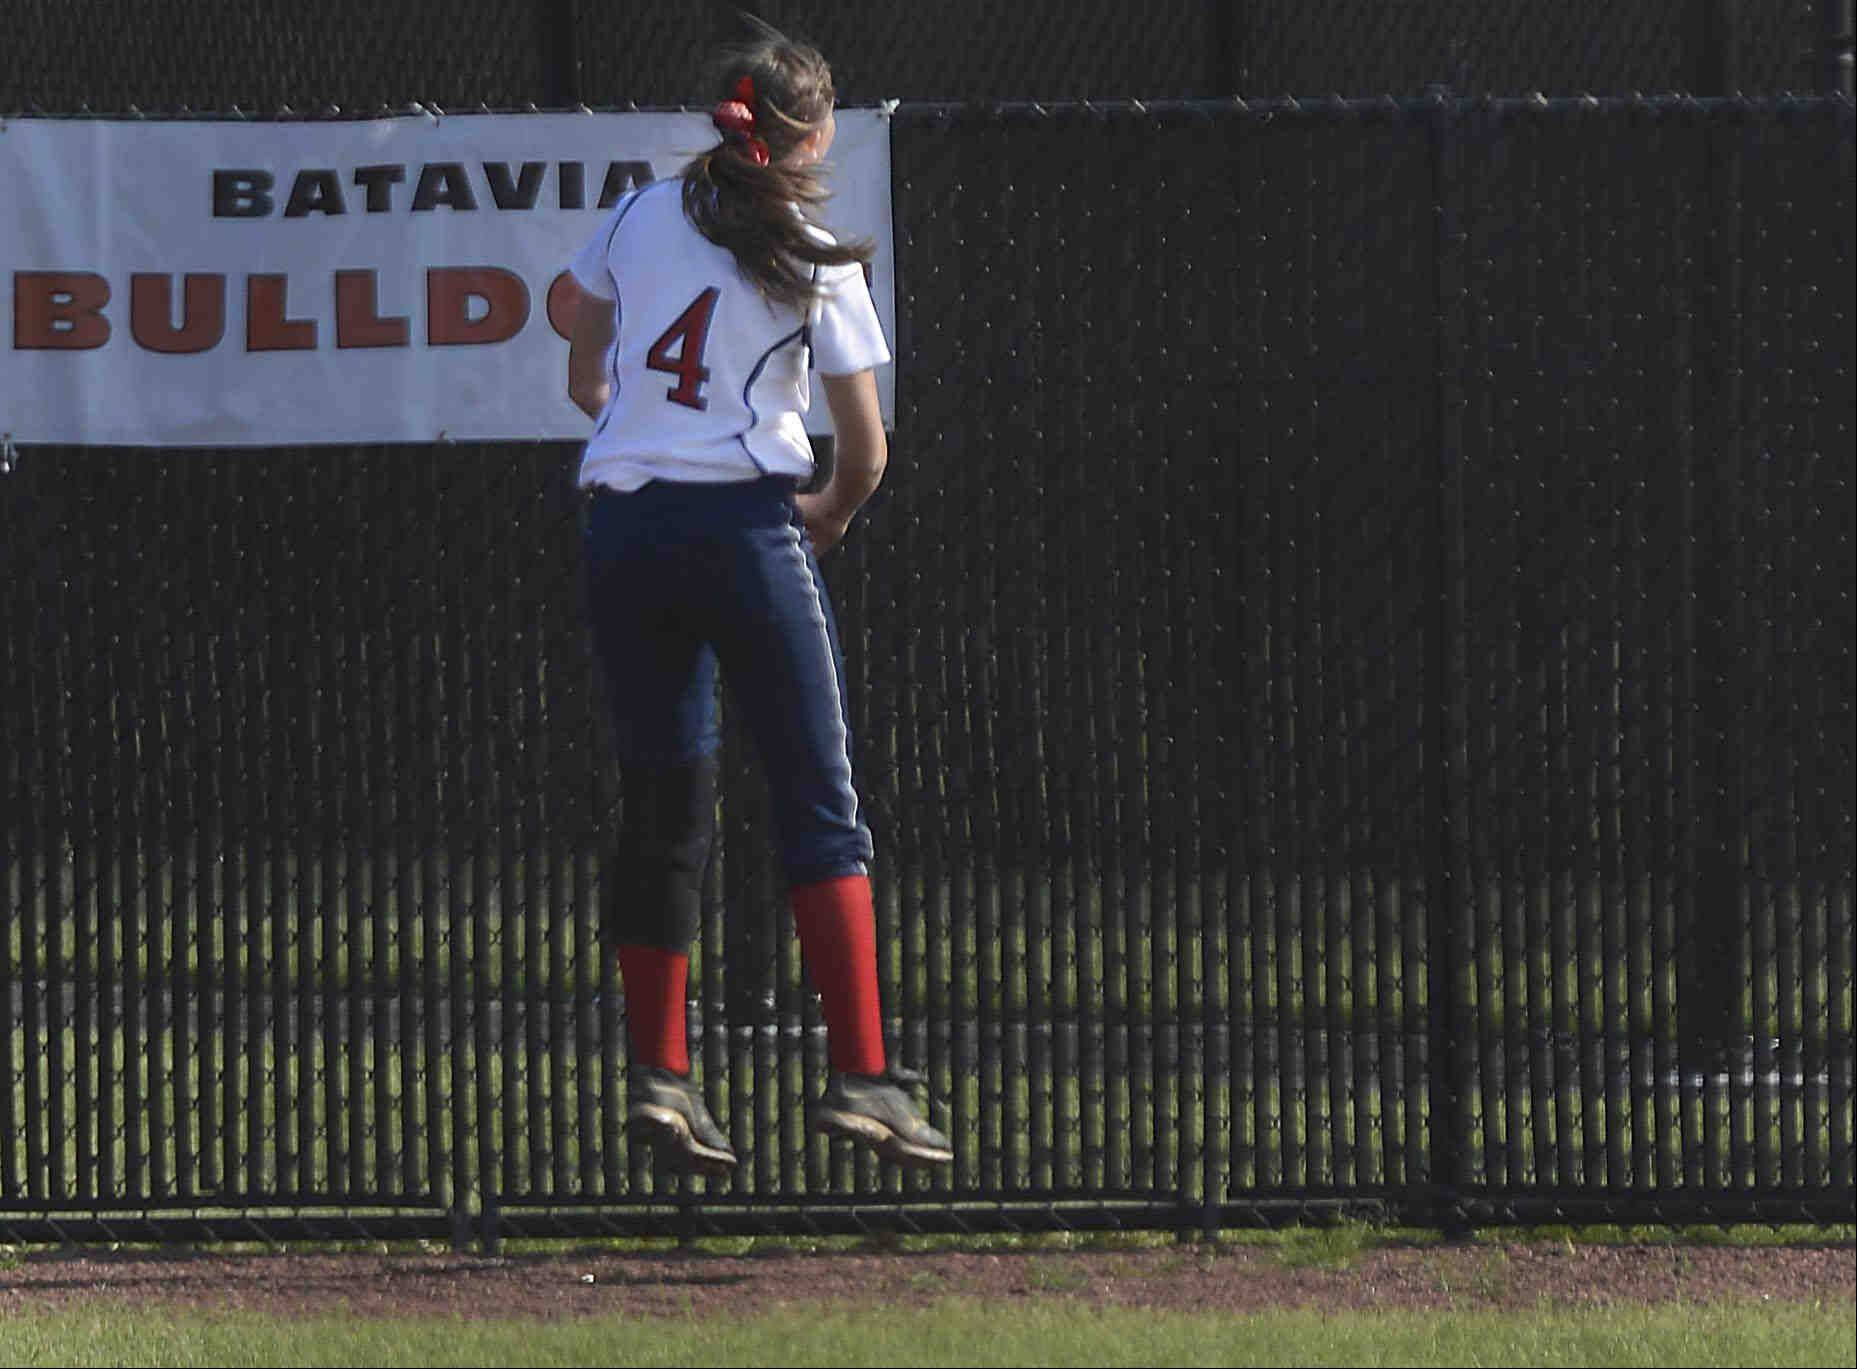 South Elgin outfielder Brittany Koss bounces as she runs out of room and watches a home run ball by Elgin's Monica Stockman bounce outside the fence in the regional semifinal game at St. Charles North Thursday. The home run brought the Maroons within one at 3-2.